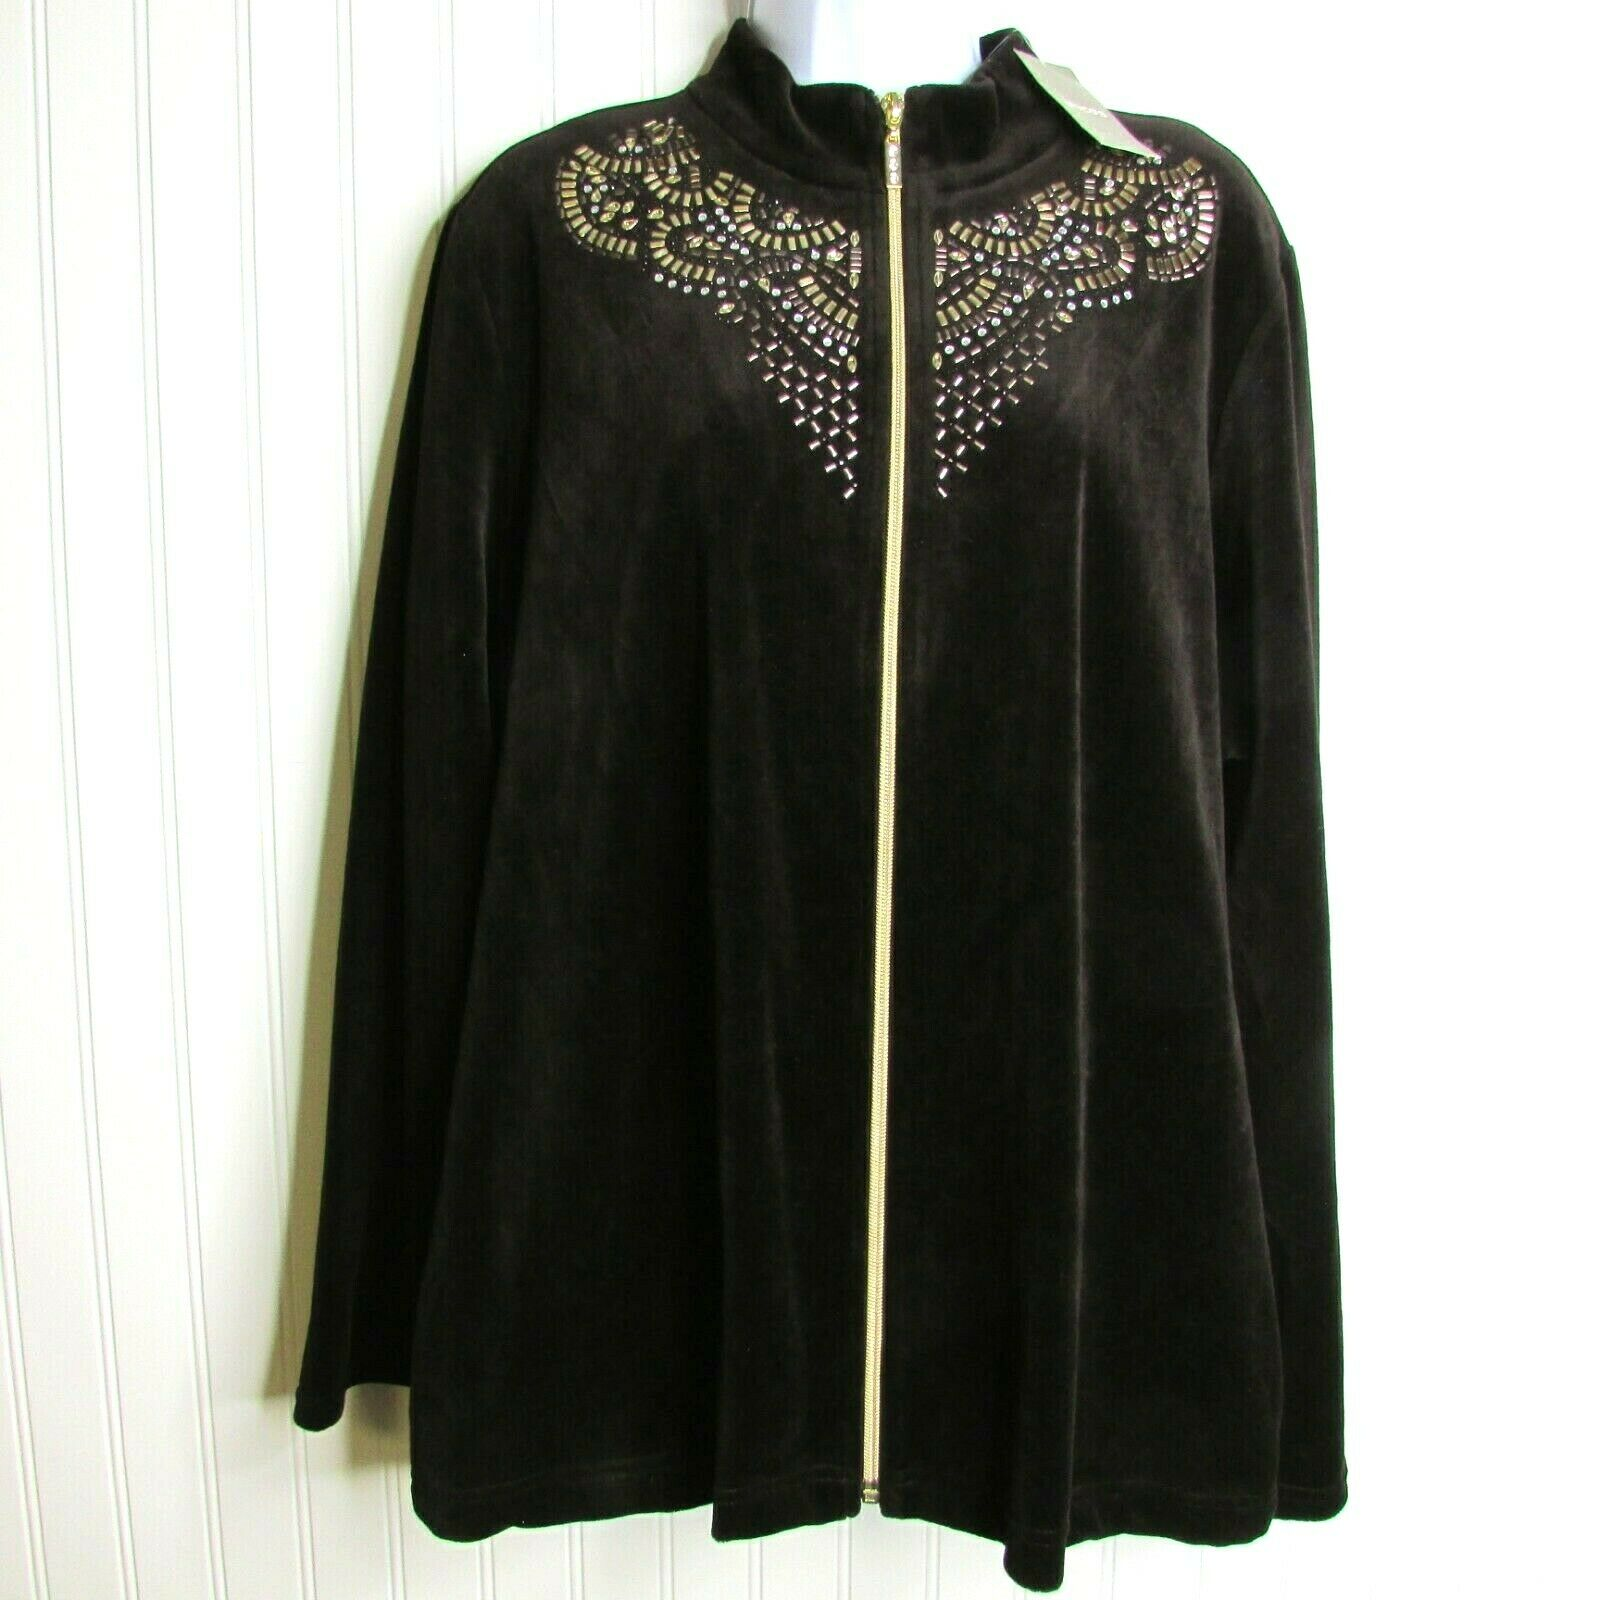 Zenergy Chicos NEW Velour Zip Jacket Embellished Brown Size 3 XL 16 Retail